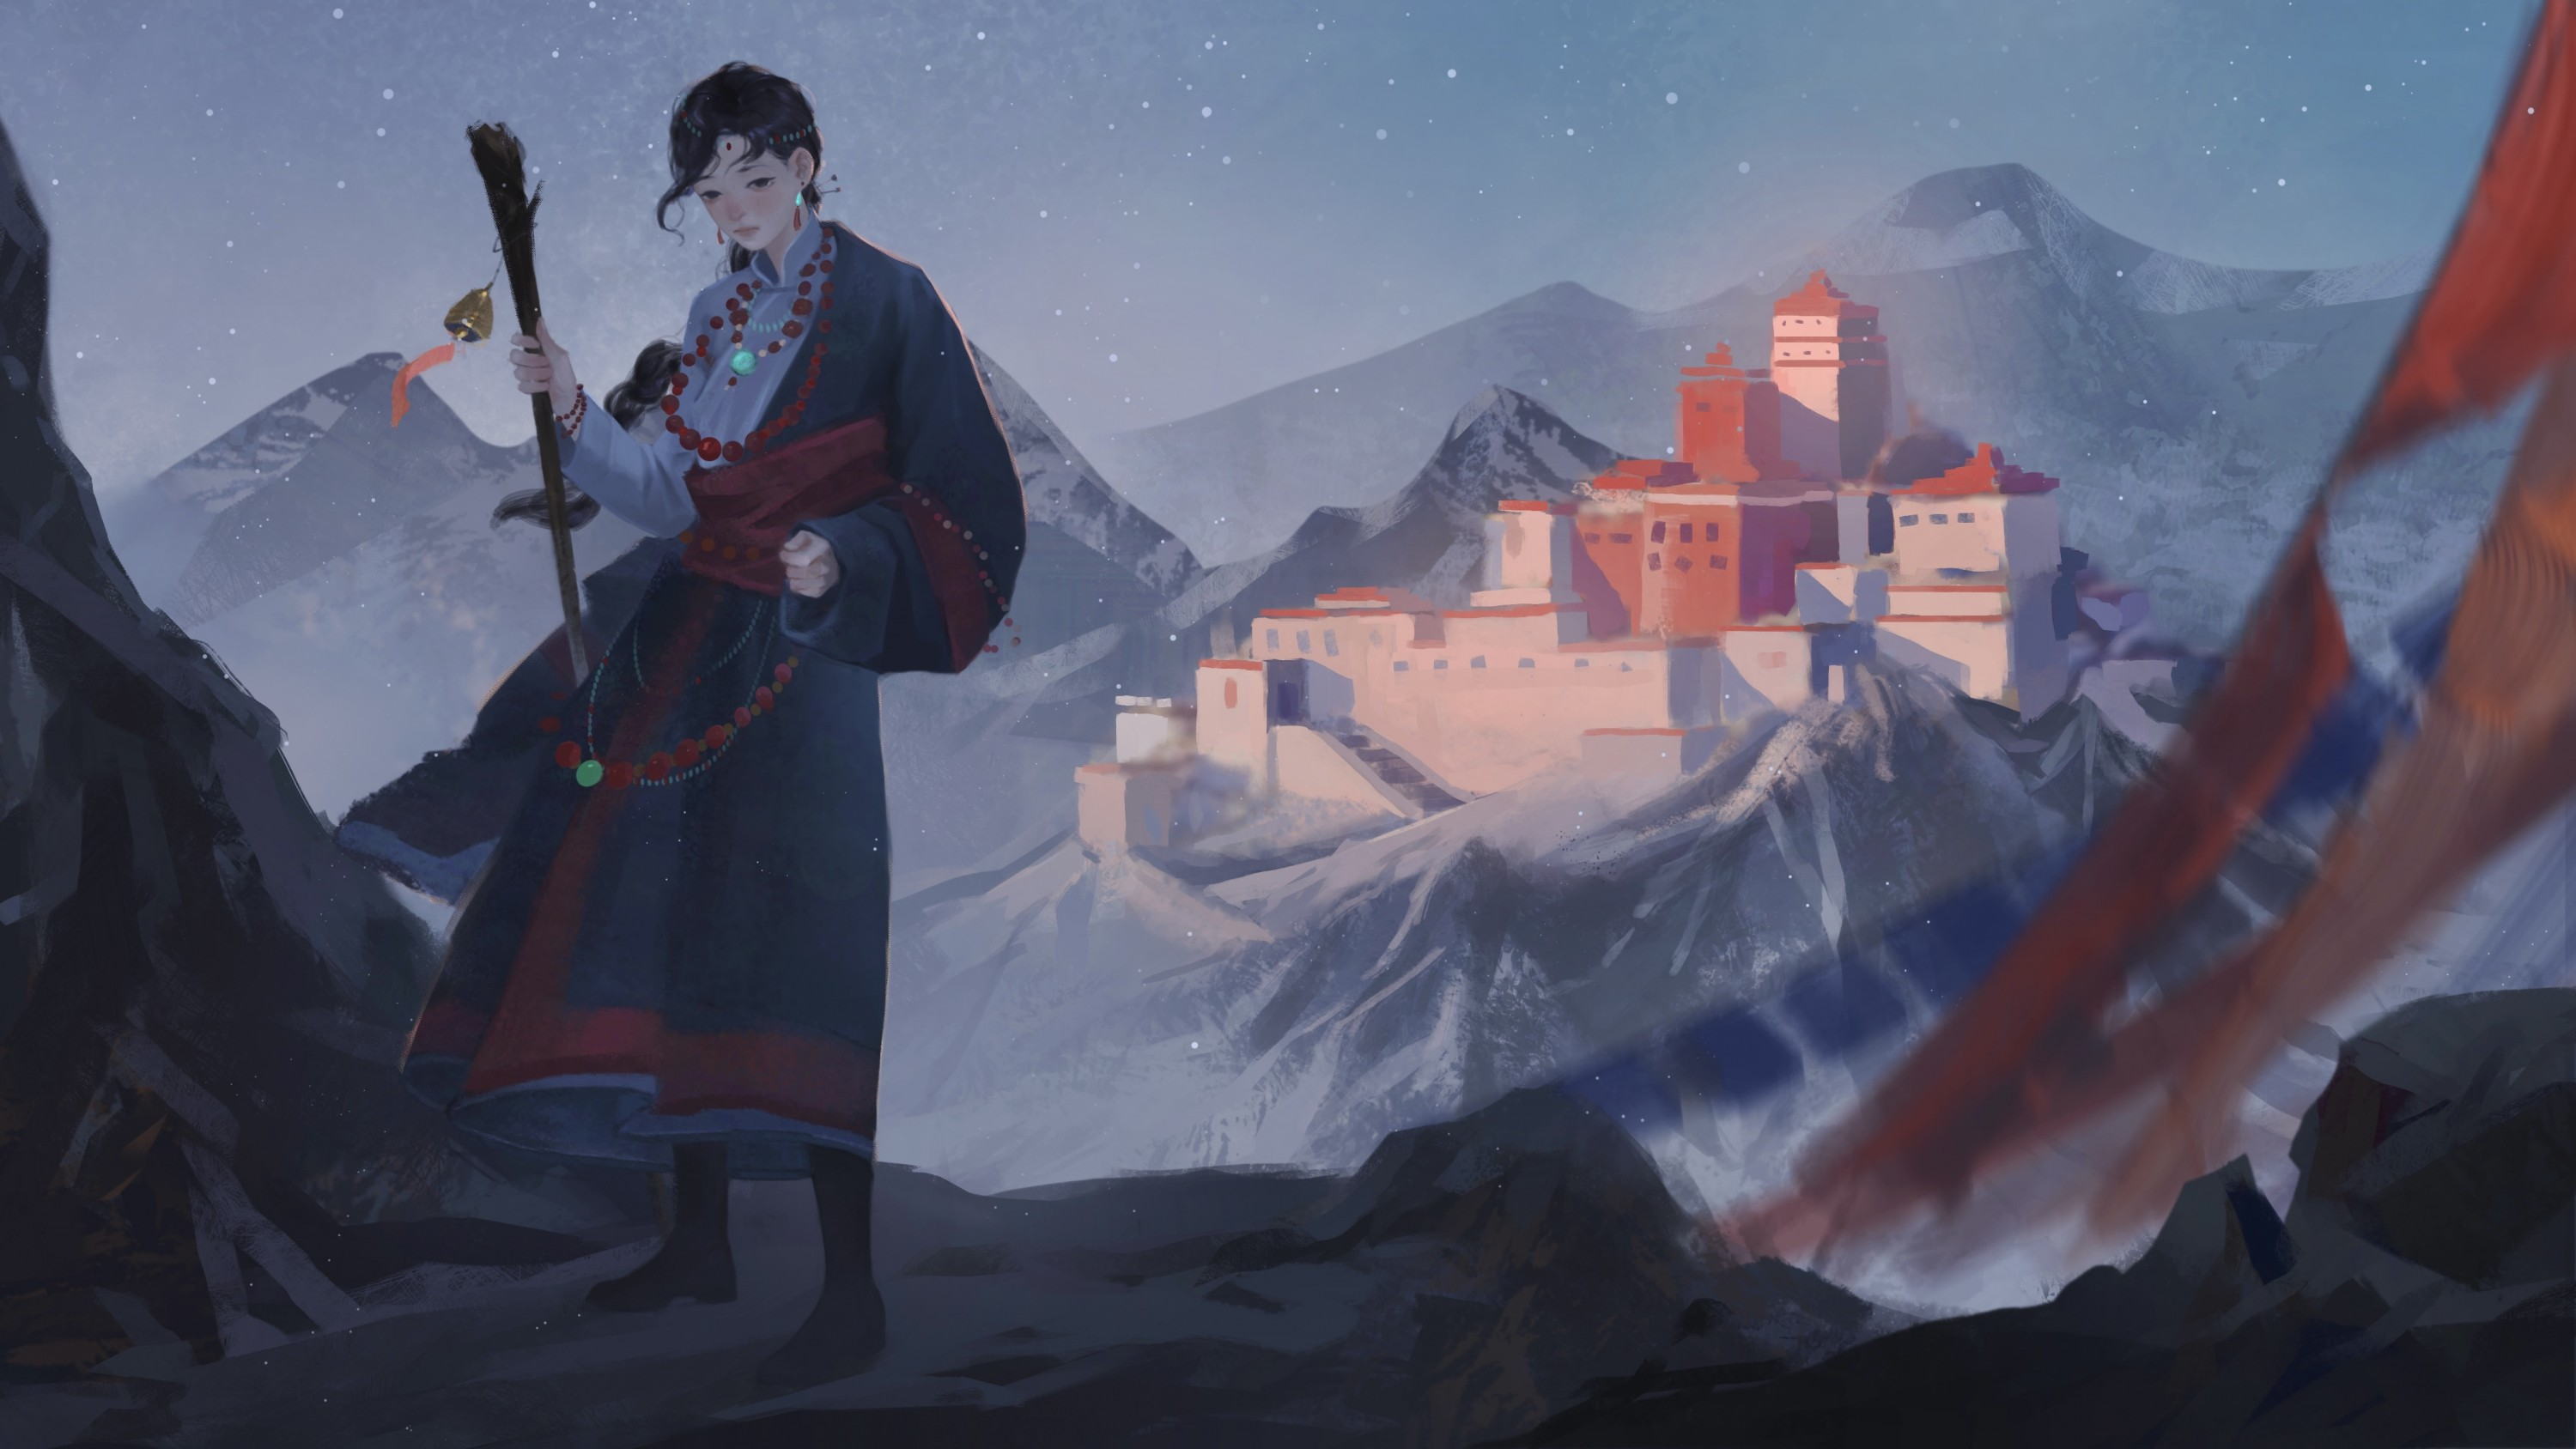 The traveler stood among the snow mountains